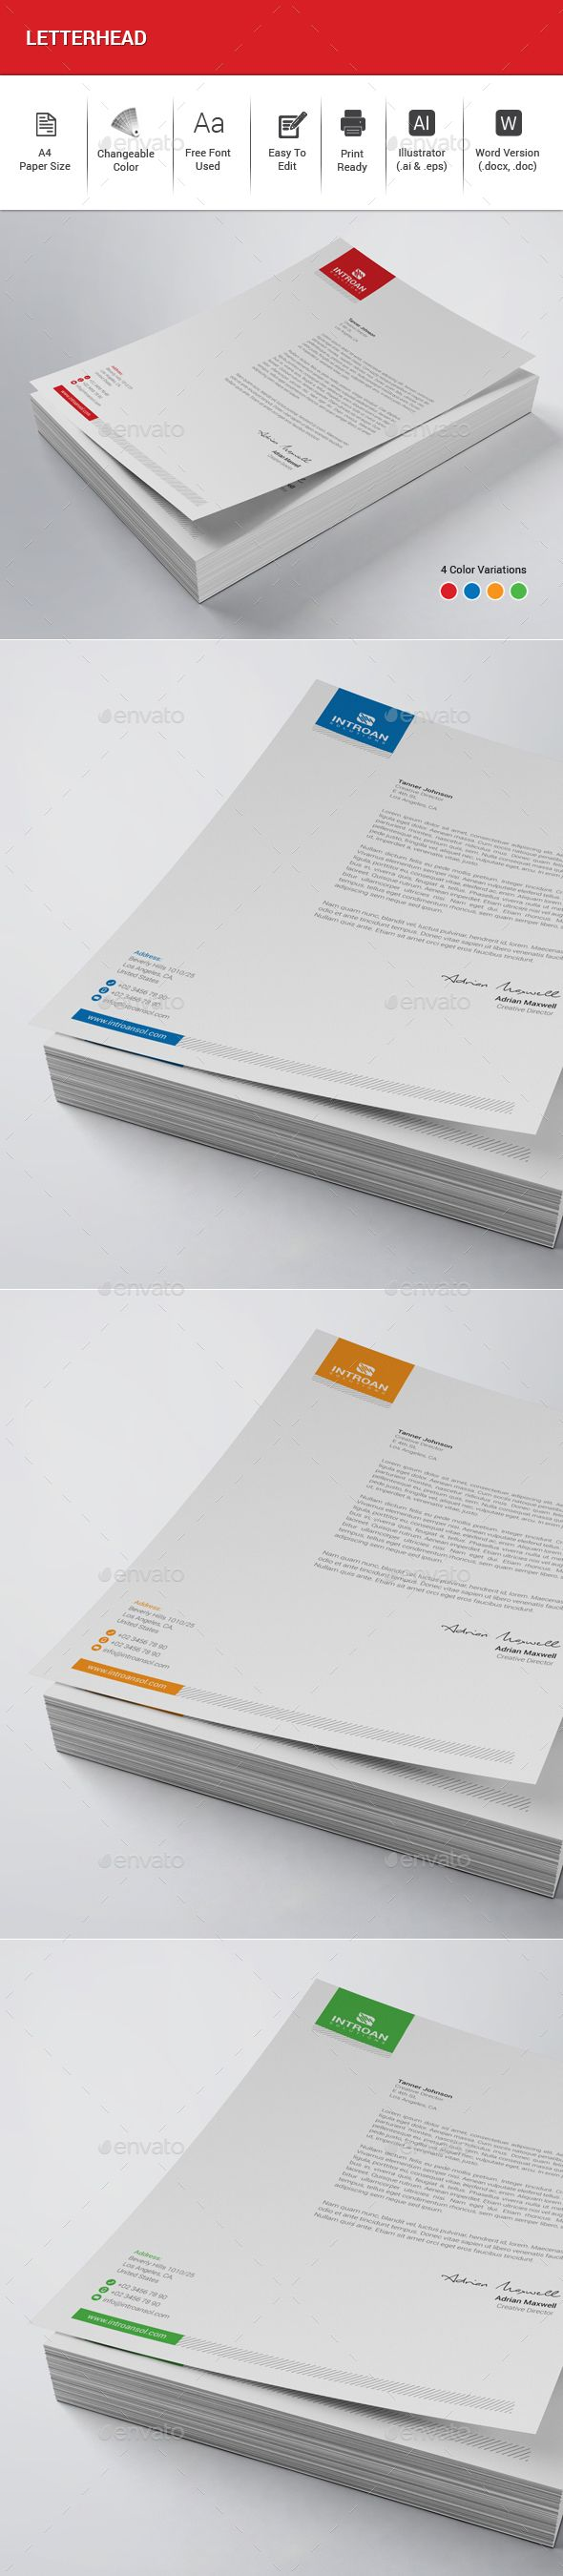 Letterhead letterhead template stationery printing and print letterhead stationery print templates download here https graphicriver spiritdancerdesigns Choice Image